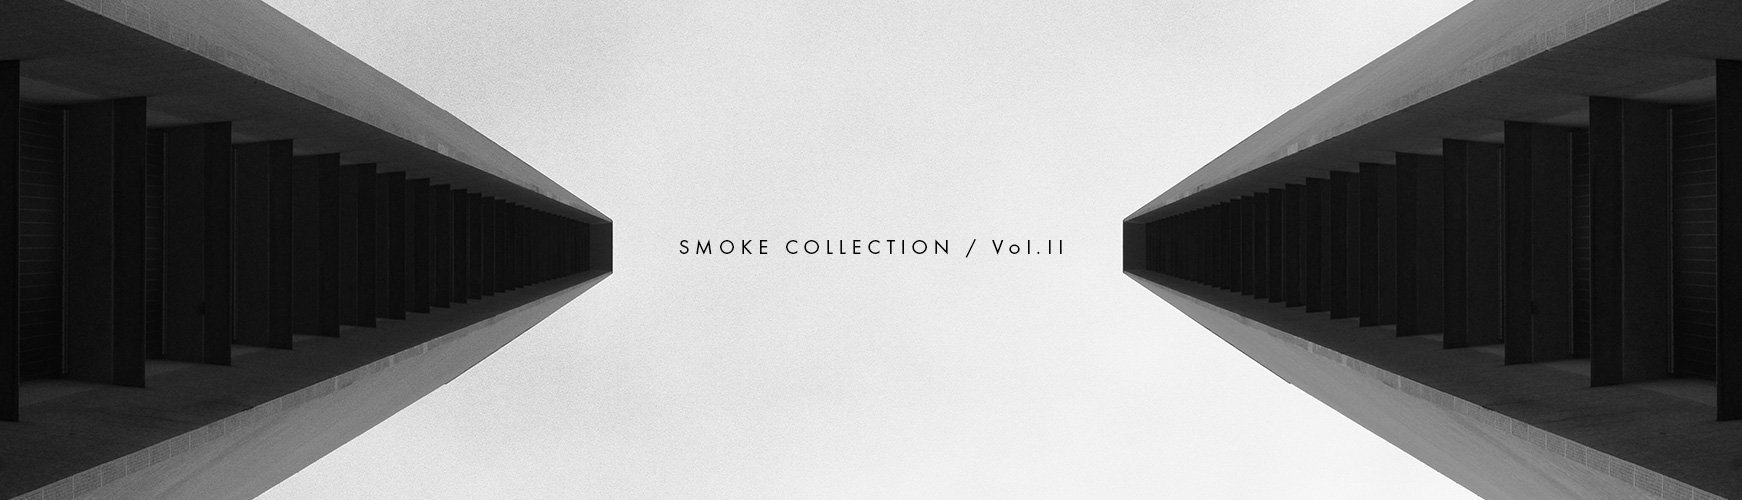 Smoke-Vol2-intro